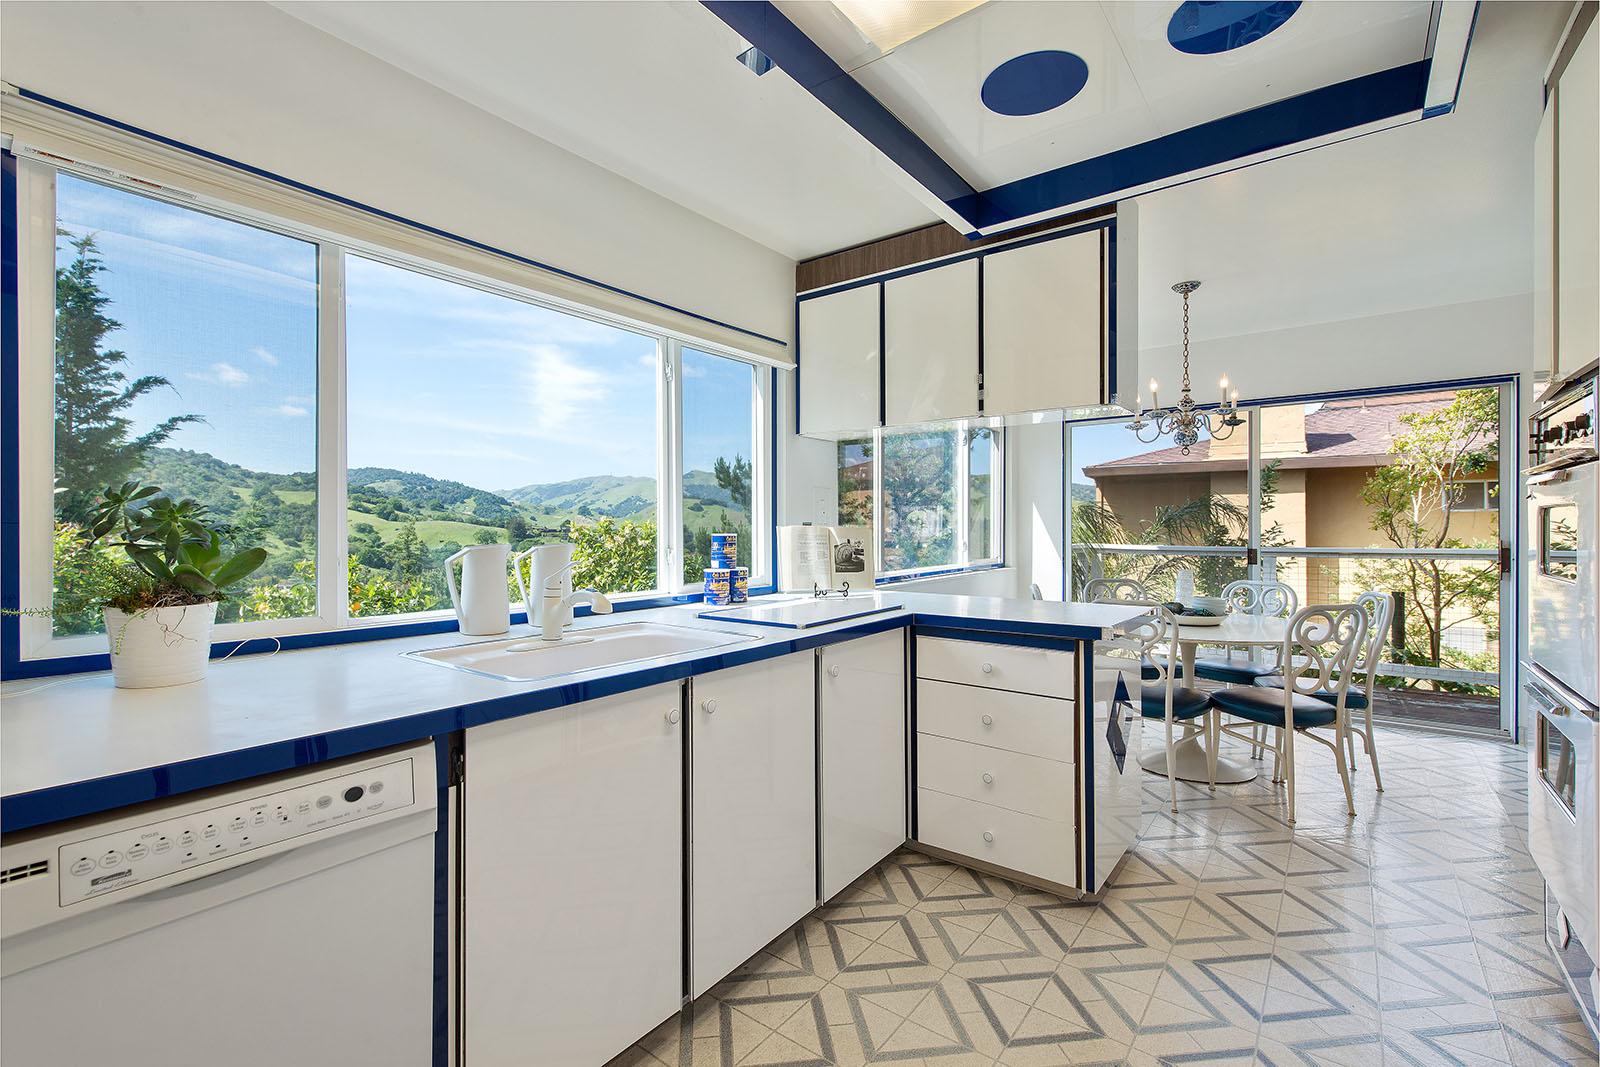 Kitchen - windows views.jpg